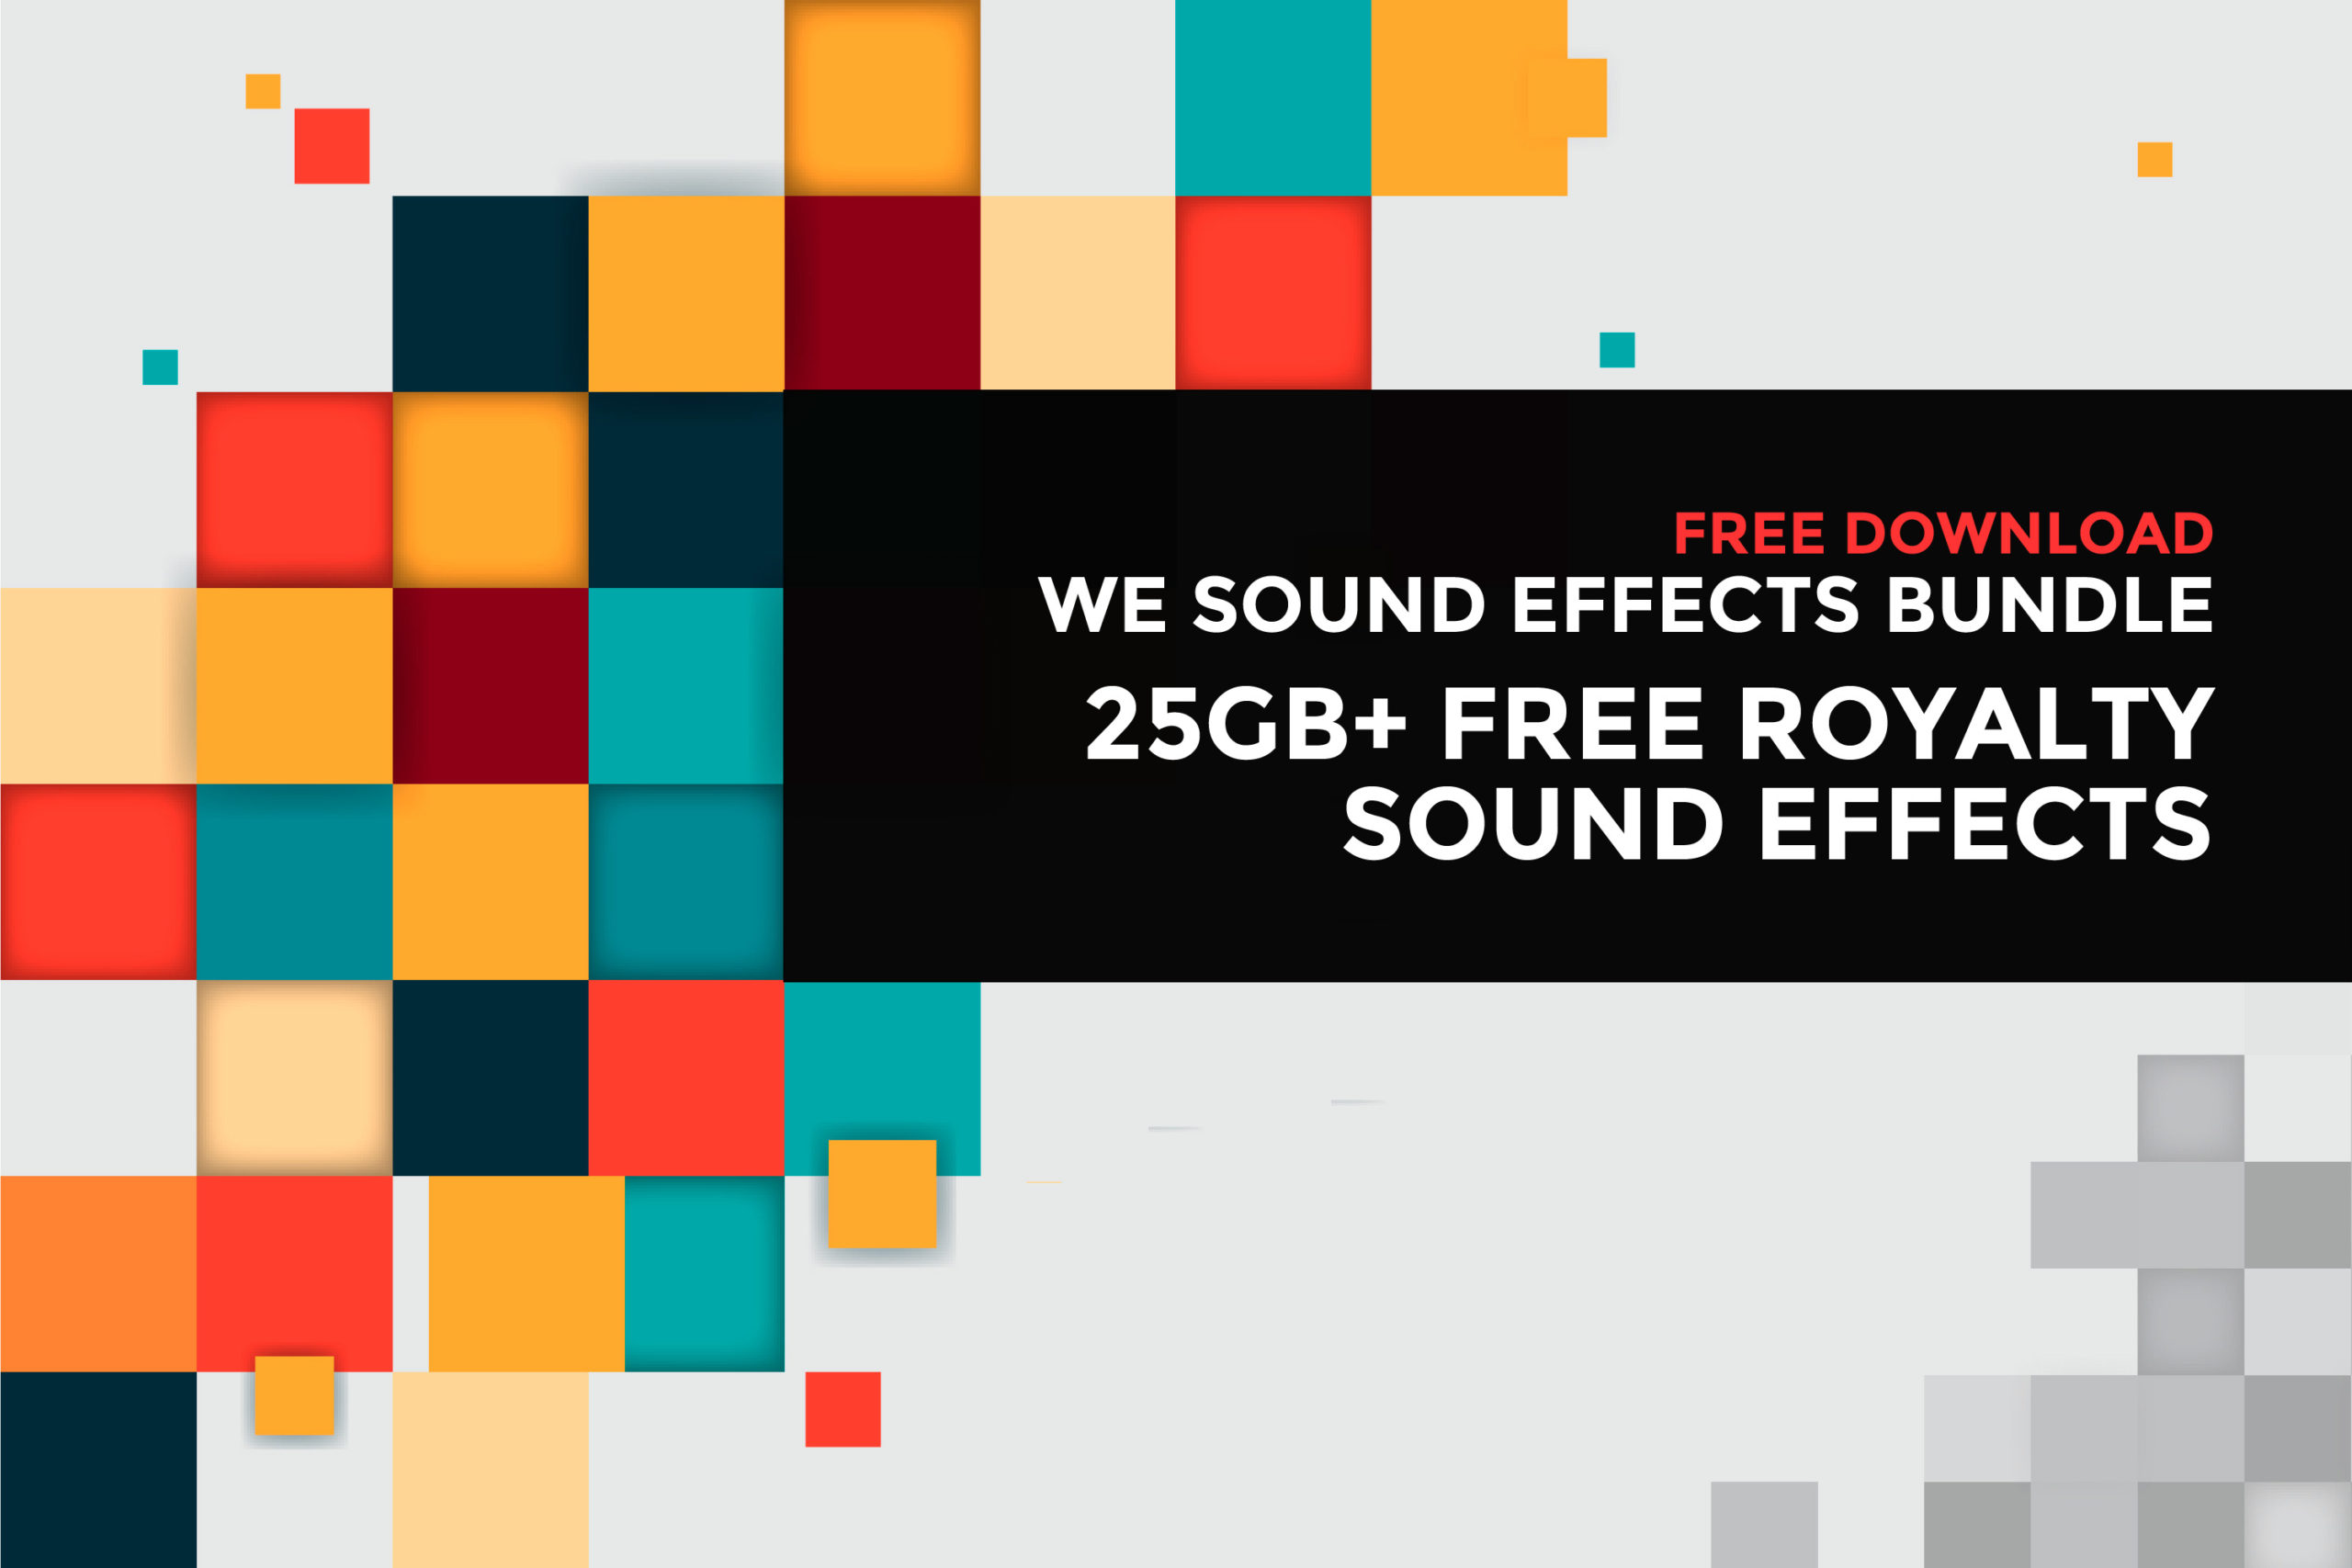 We Sound Effects Bundle 2020 | Free Download 25GB+ High Quality SFX